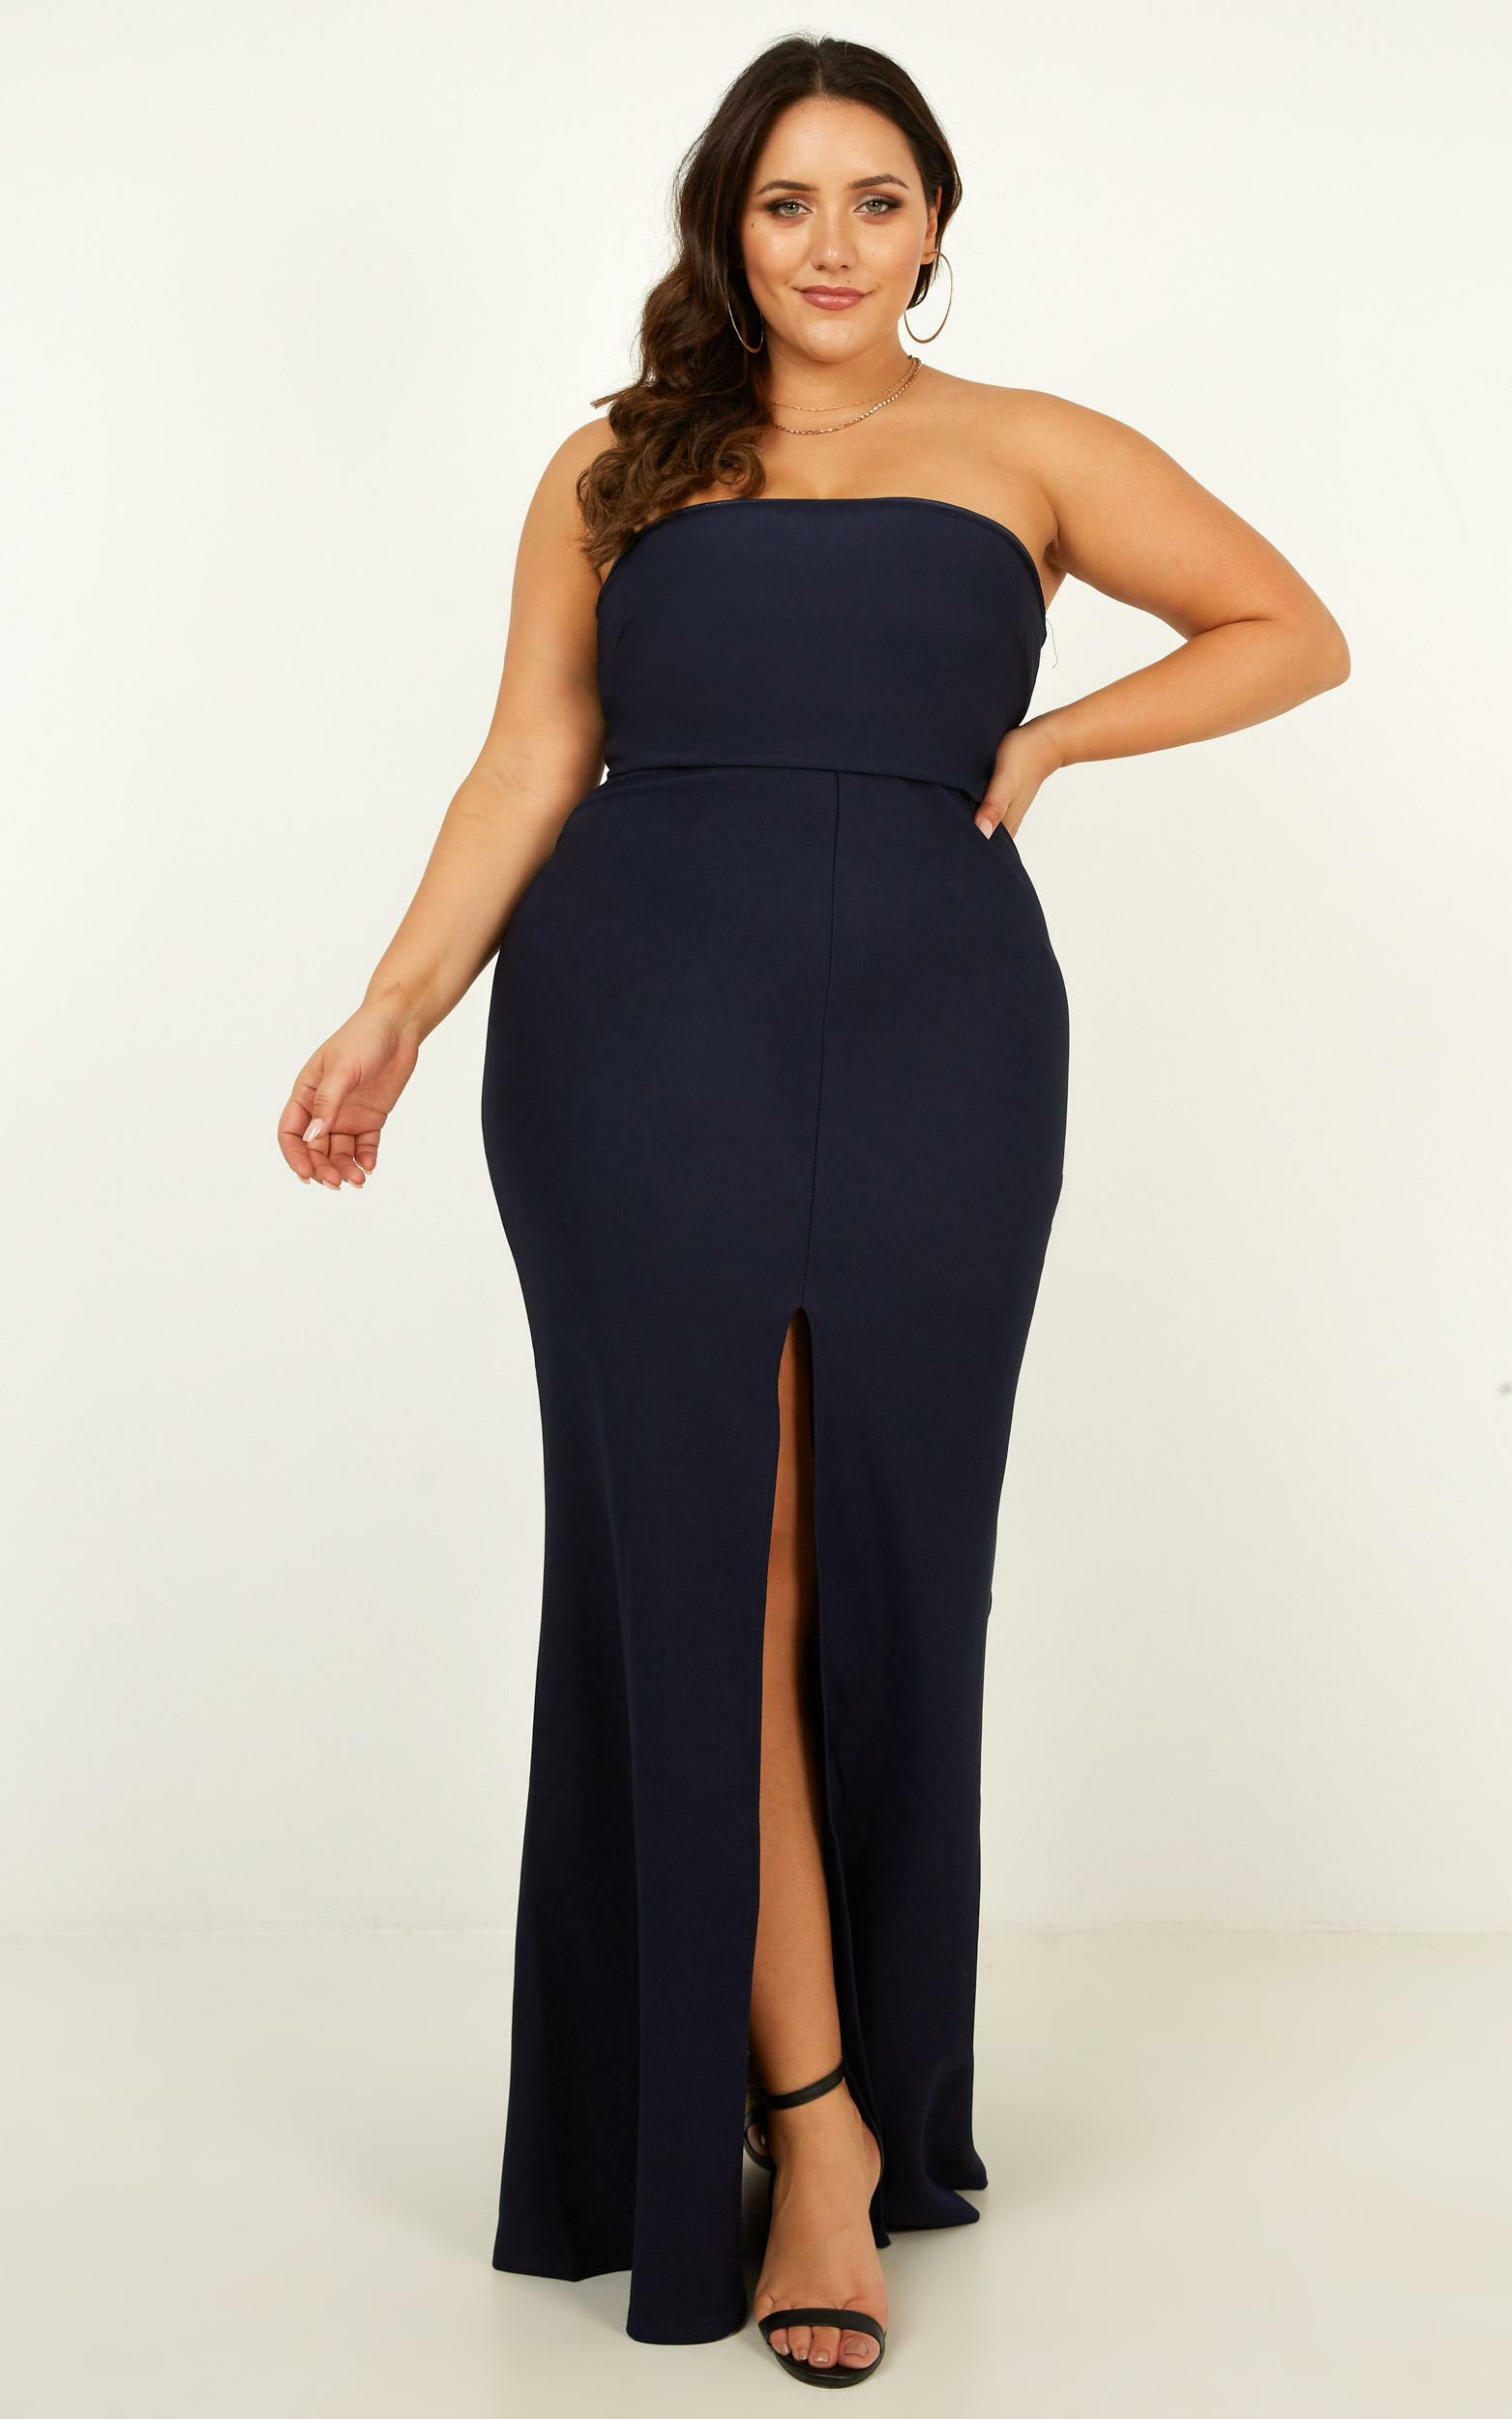 One More Kiss Maxi Dress in navy - 20 (XXXXL), Navy, hi-res image number null